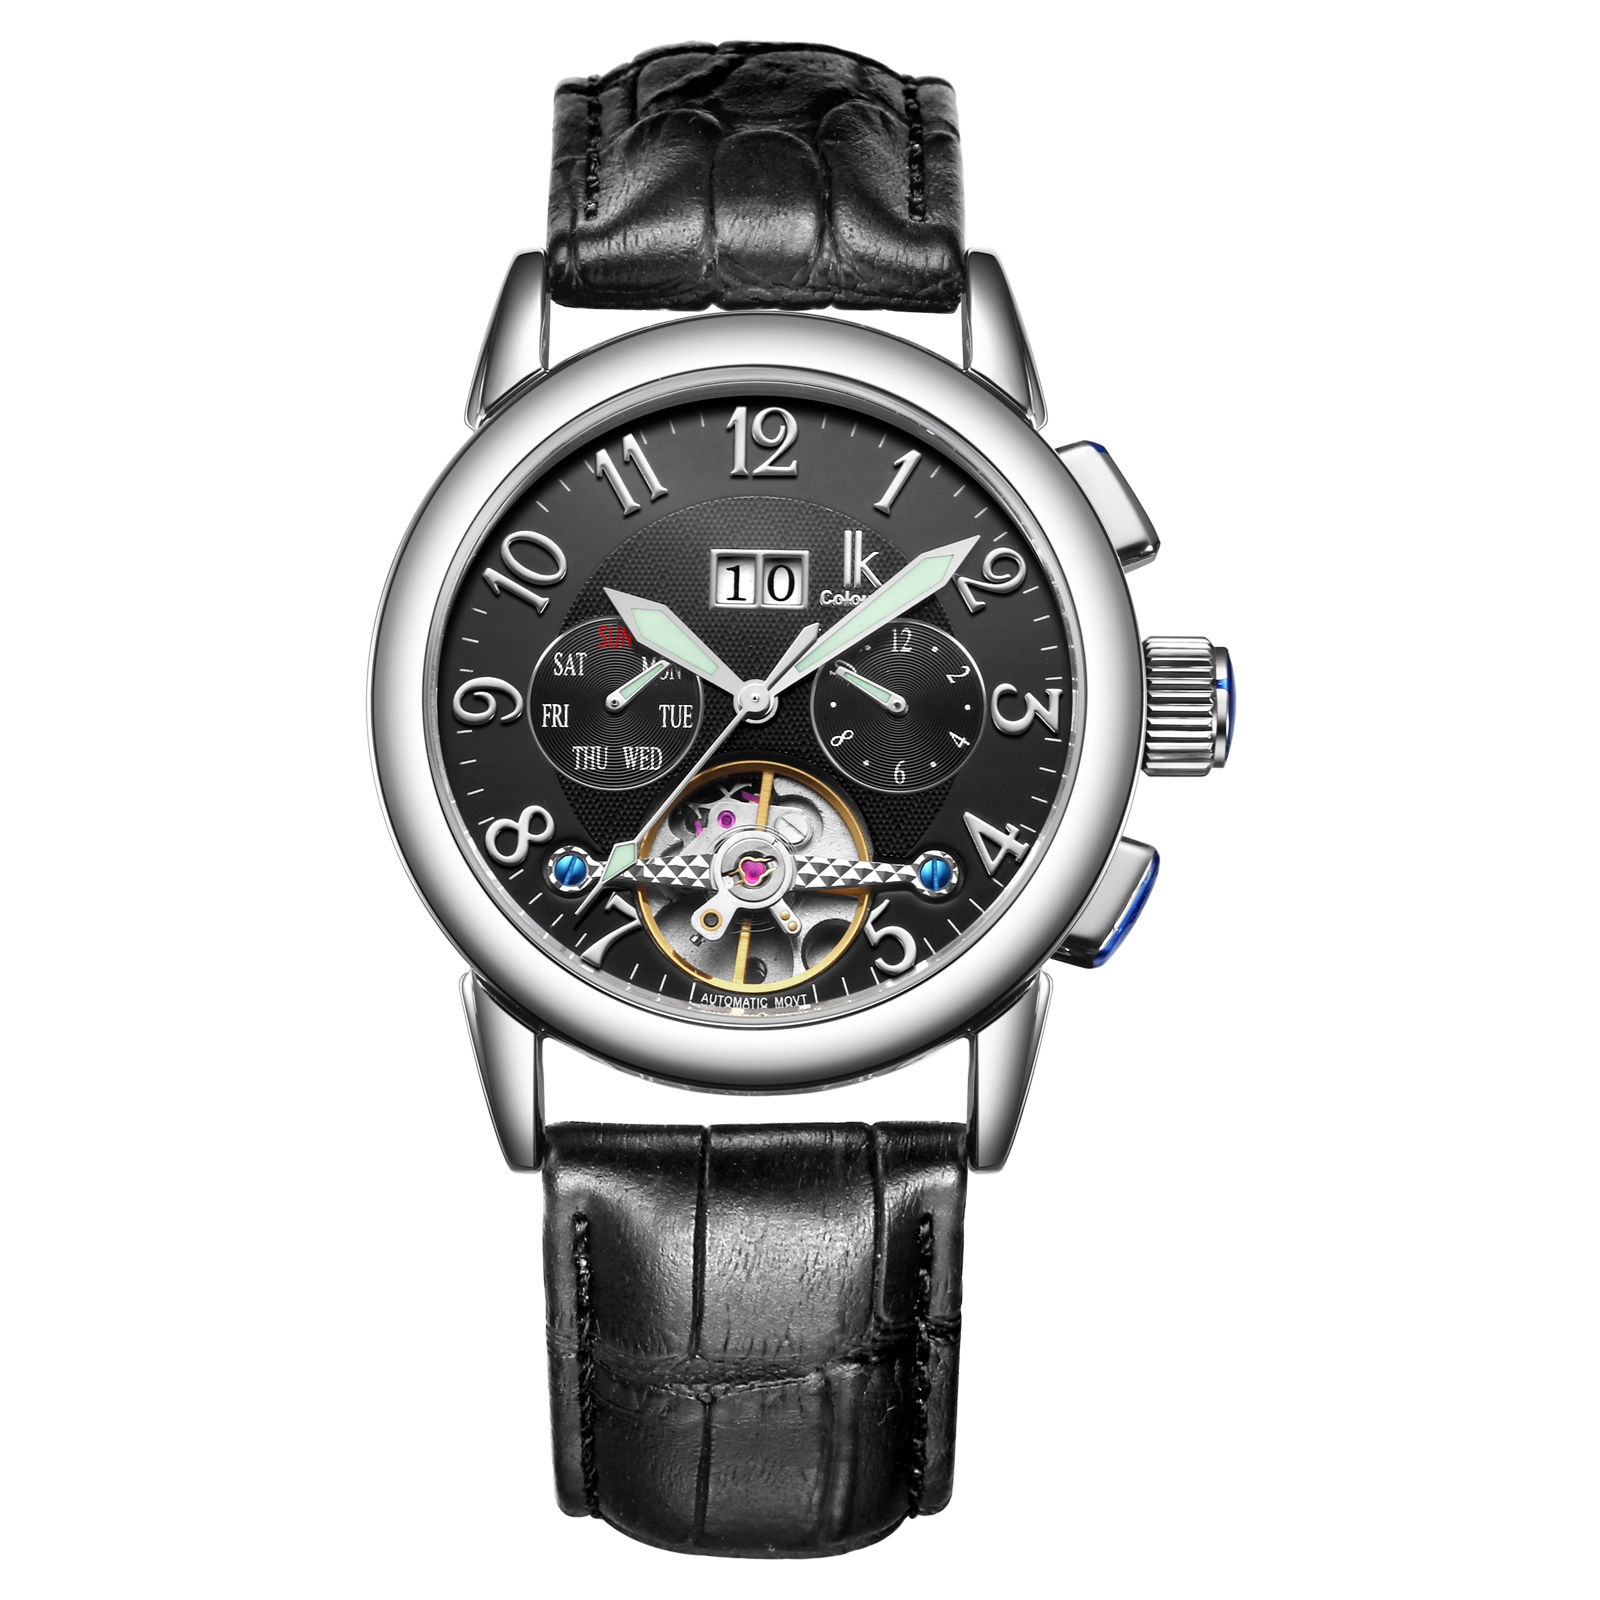 IK Luxury Men Watch Automatic Mechanical Watches Week Day Date Genuine Leather Strap Skeleton Watch Sport Military reloje hombre ik brand luxury automatic mechanical watches men sub dial function date 24 hours display genuine leather skeleton watch relojes